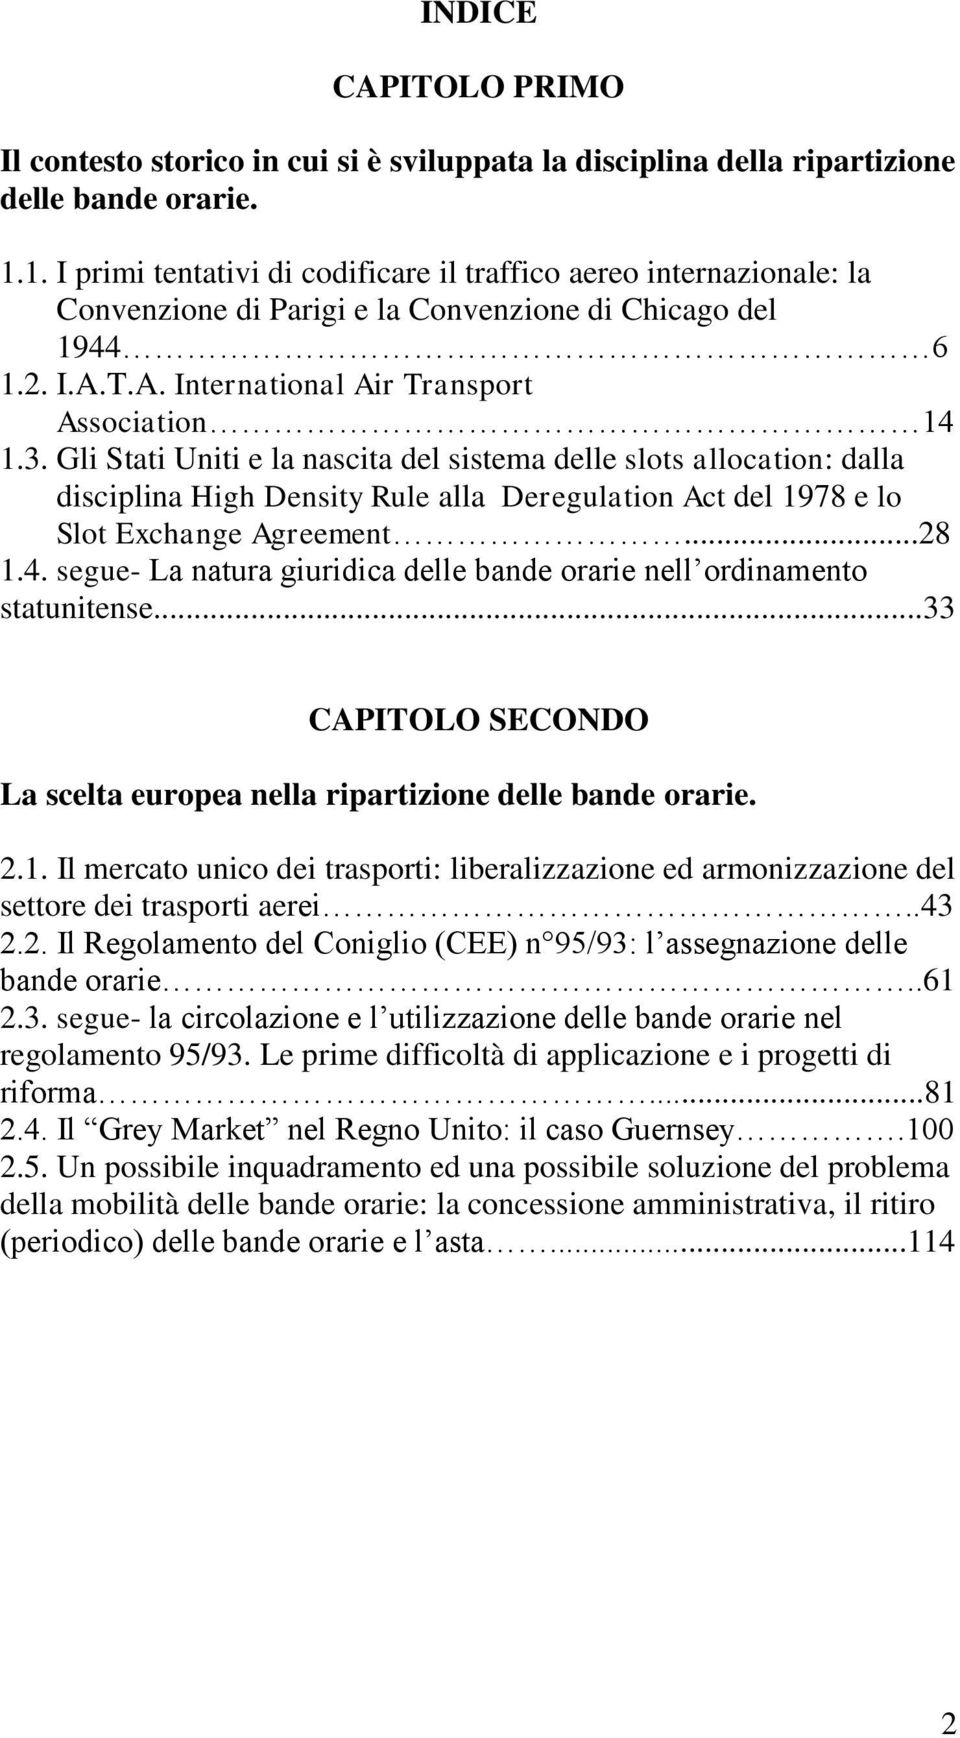 Gli Stati Uniti e la nascita del sistema delle slots allocation: dalla disciplina High Density Rule alla Deregulation Act del 1978 e lo Slot Exchange Agreement...28 1.4.